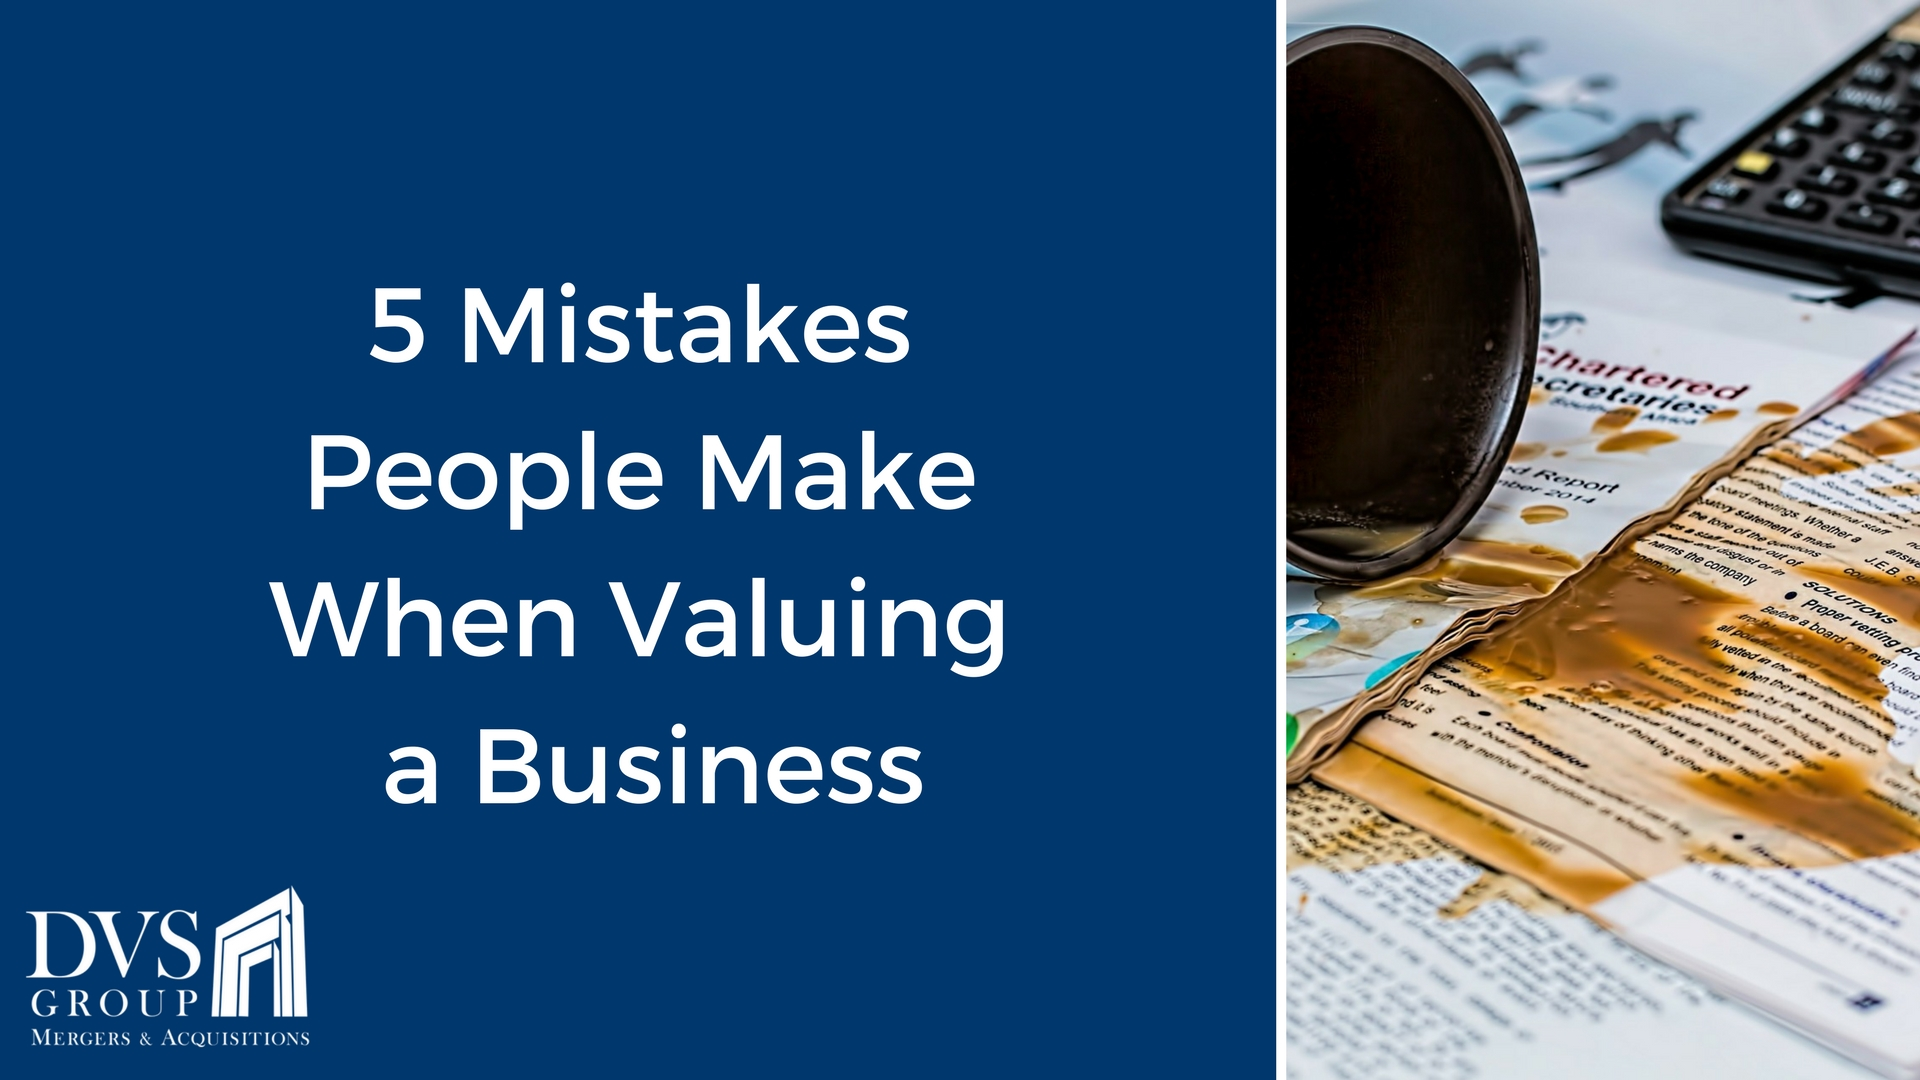 5 Mistakes People Make When Valuing a Business